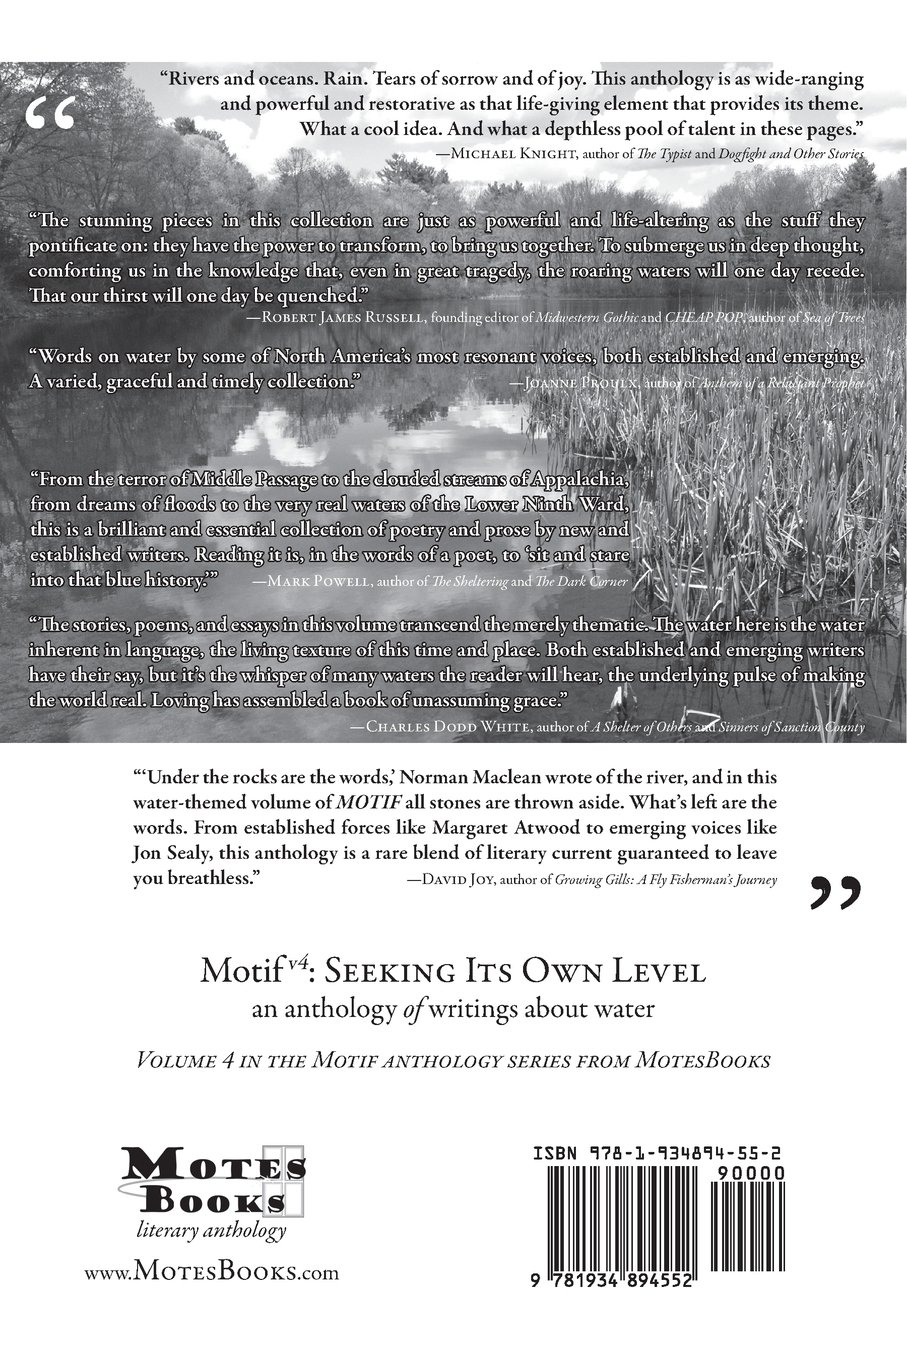 seeking its own level motif volume 4 margaret atwood lynne seeking its own level motif volume 4 margaret atwood lynne sharon schwartz amy hempel maurice manning jamie quatro richard hague roxane gay